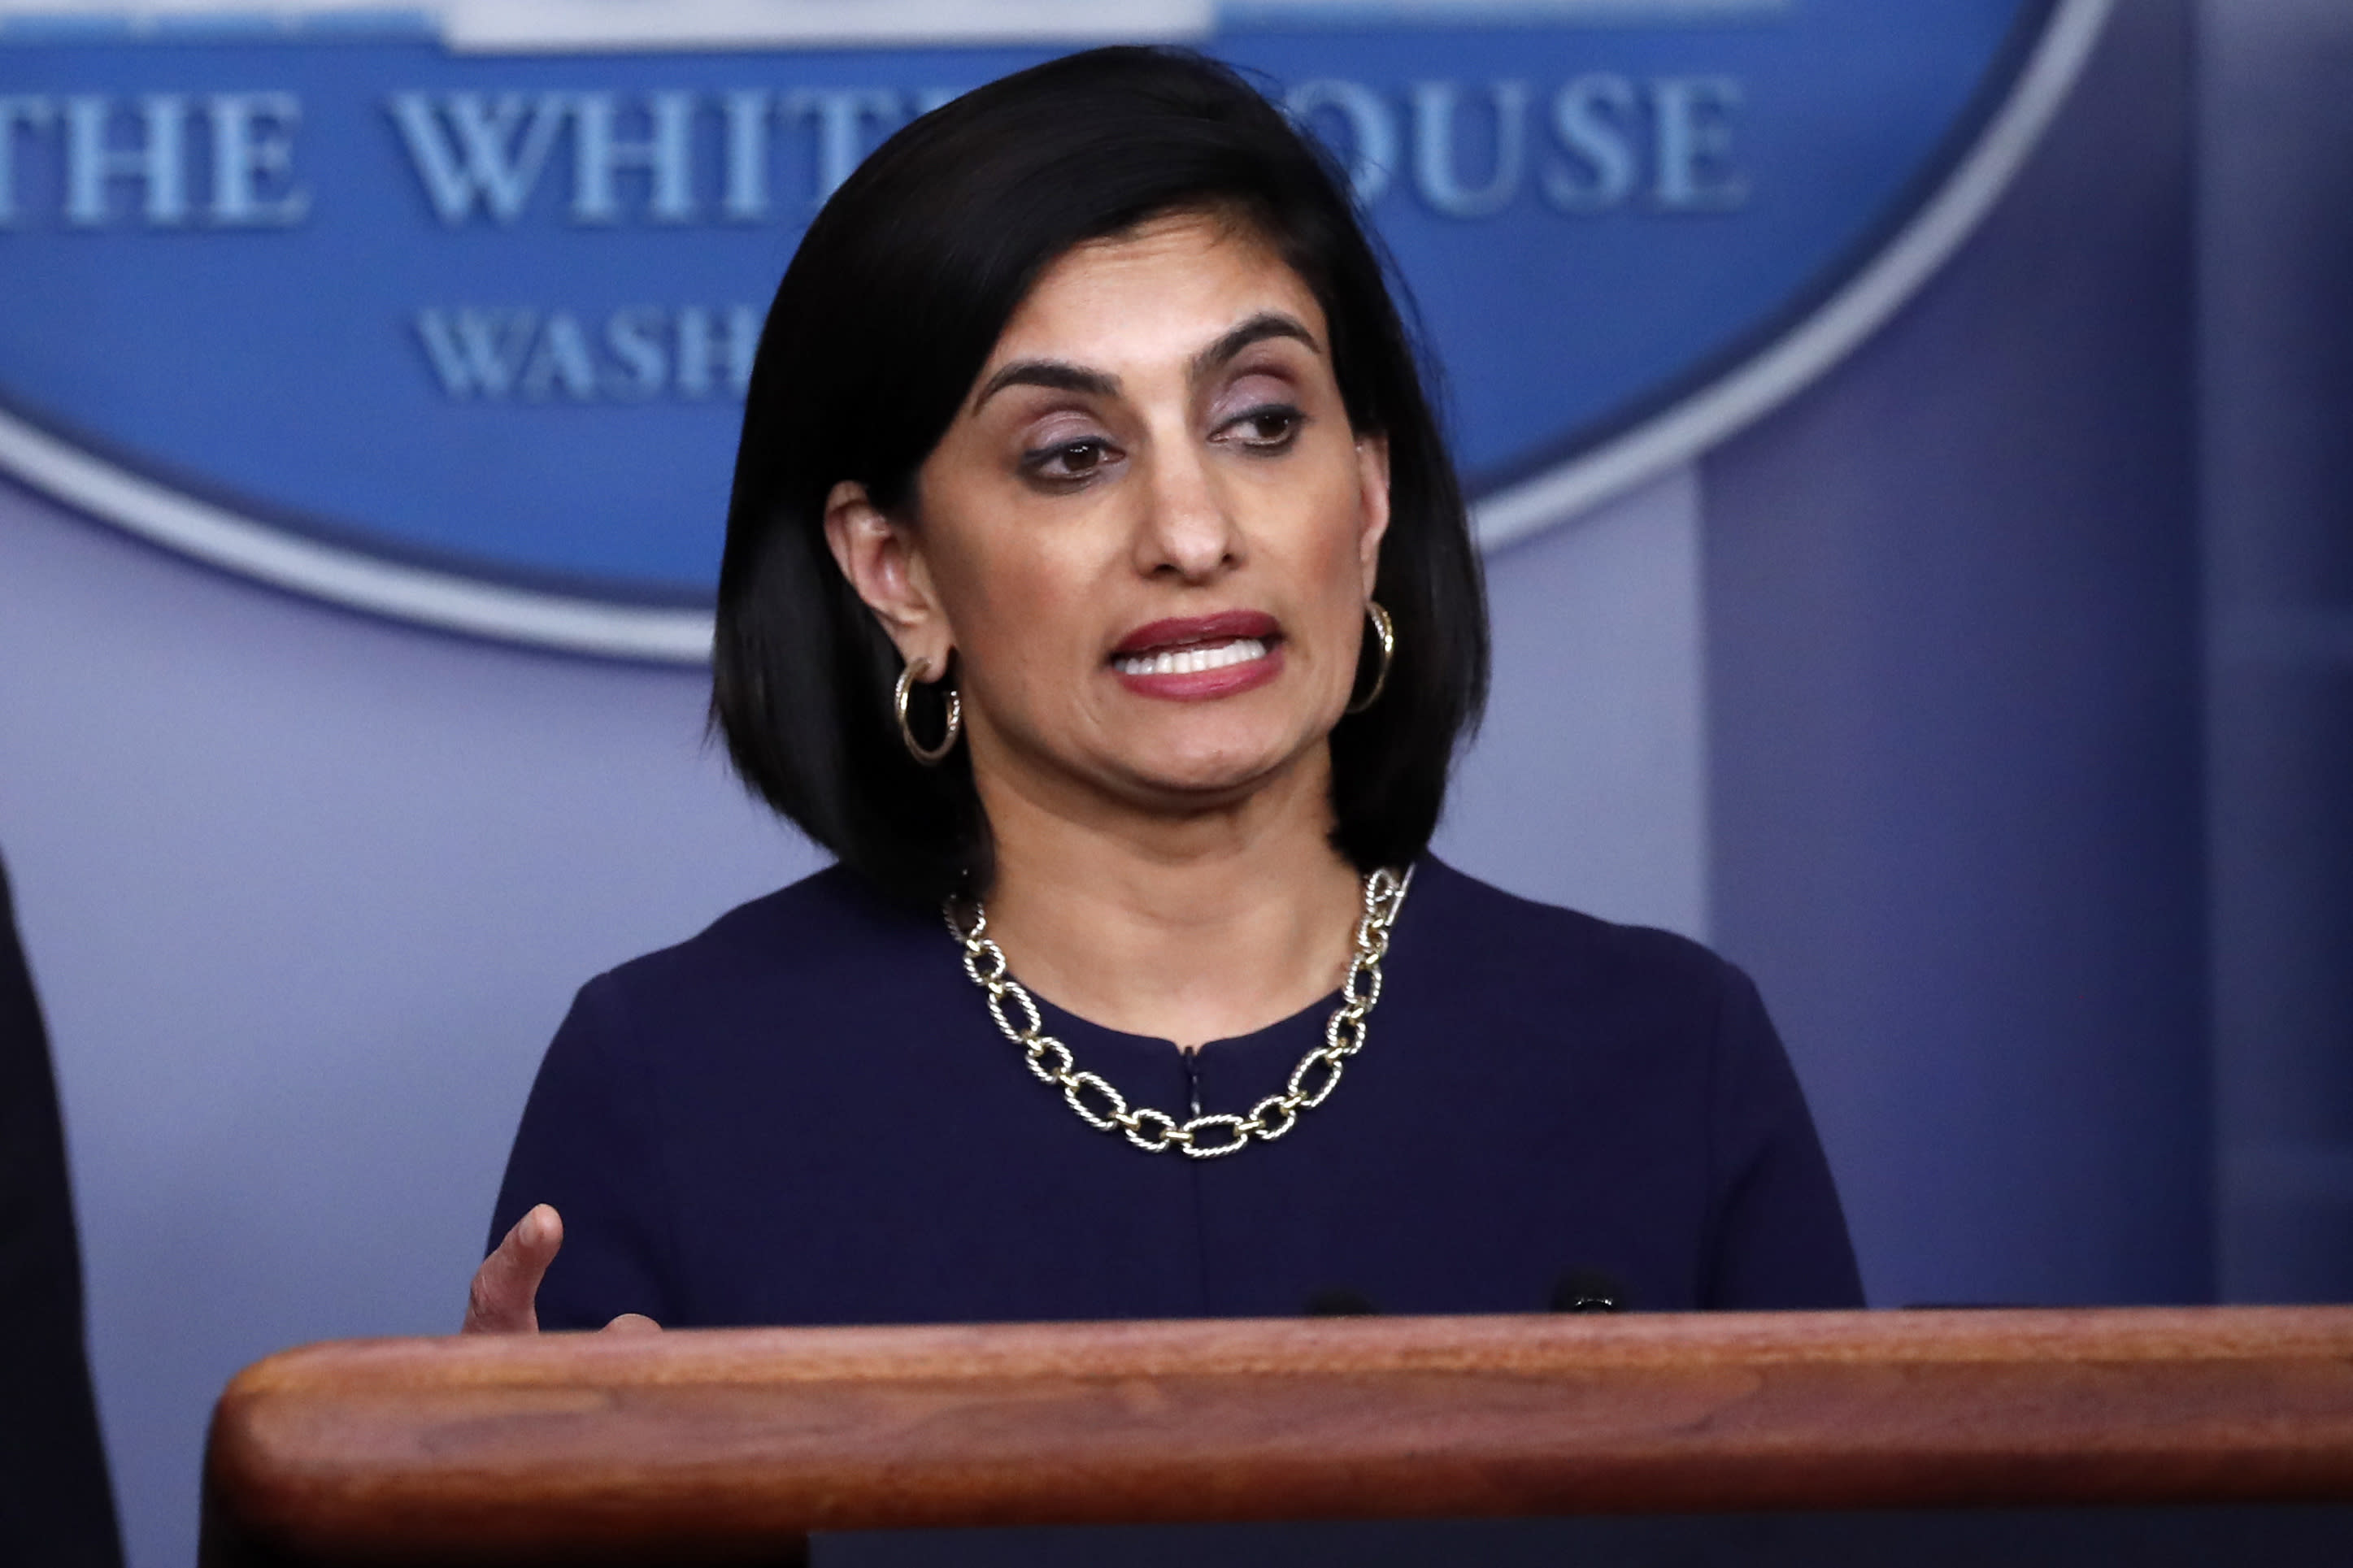 FILE - In this April 7, 2020, file photo, Seema Verma, administrator of the Centers for Medicare and Medicaid Services, speaks about the coronavirus, in the James Brady Press Briefing Room of the White House in Washington. Verma failed to properly manage more than $6 million in communications and outreach contracts, giving broad authority over federal employees to a Republican media strategist she worked with before joining the Trump administration, a government watchdog said in a report to be released Thursday, July 16. (AP Photo/Alex Brandon, File)